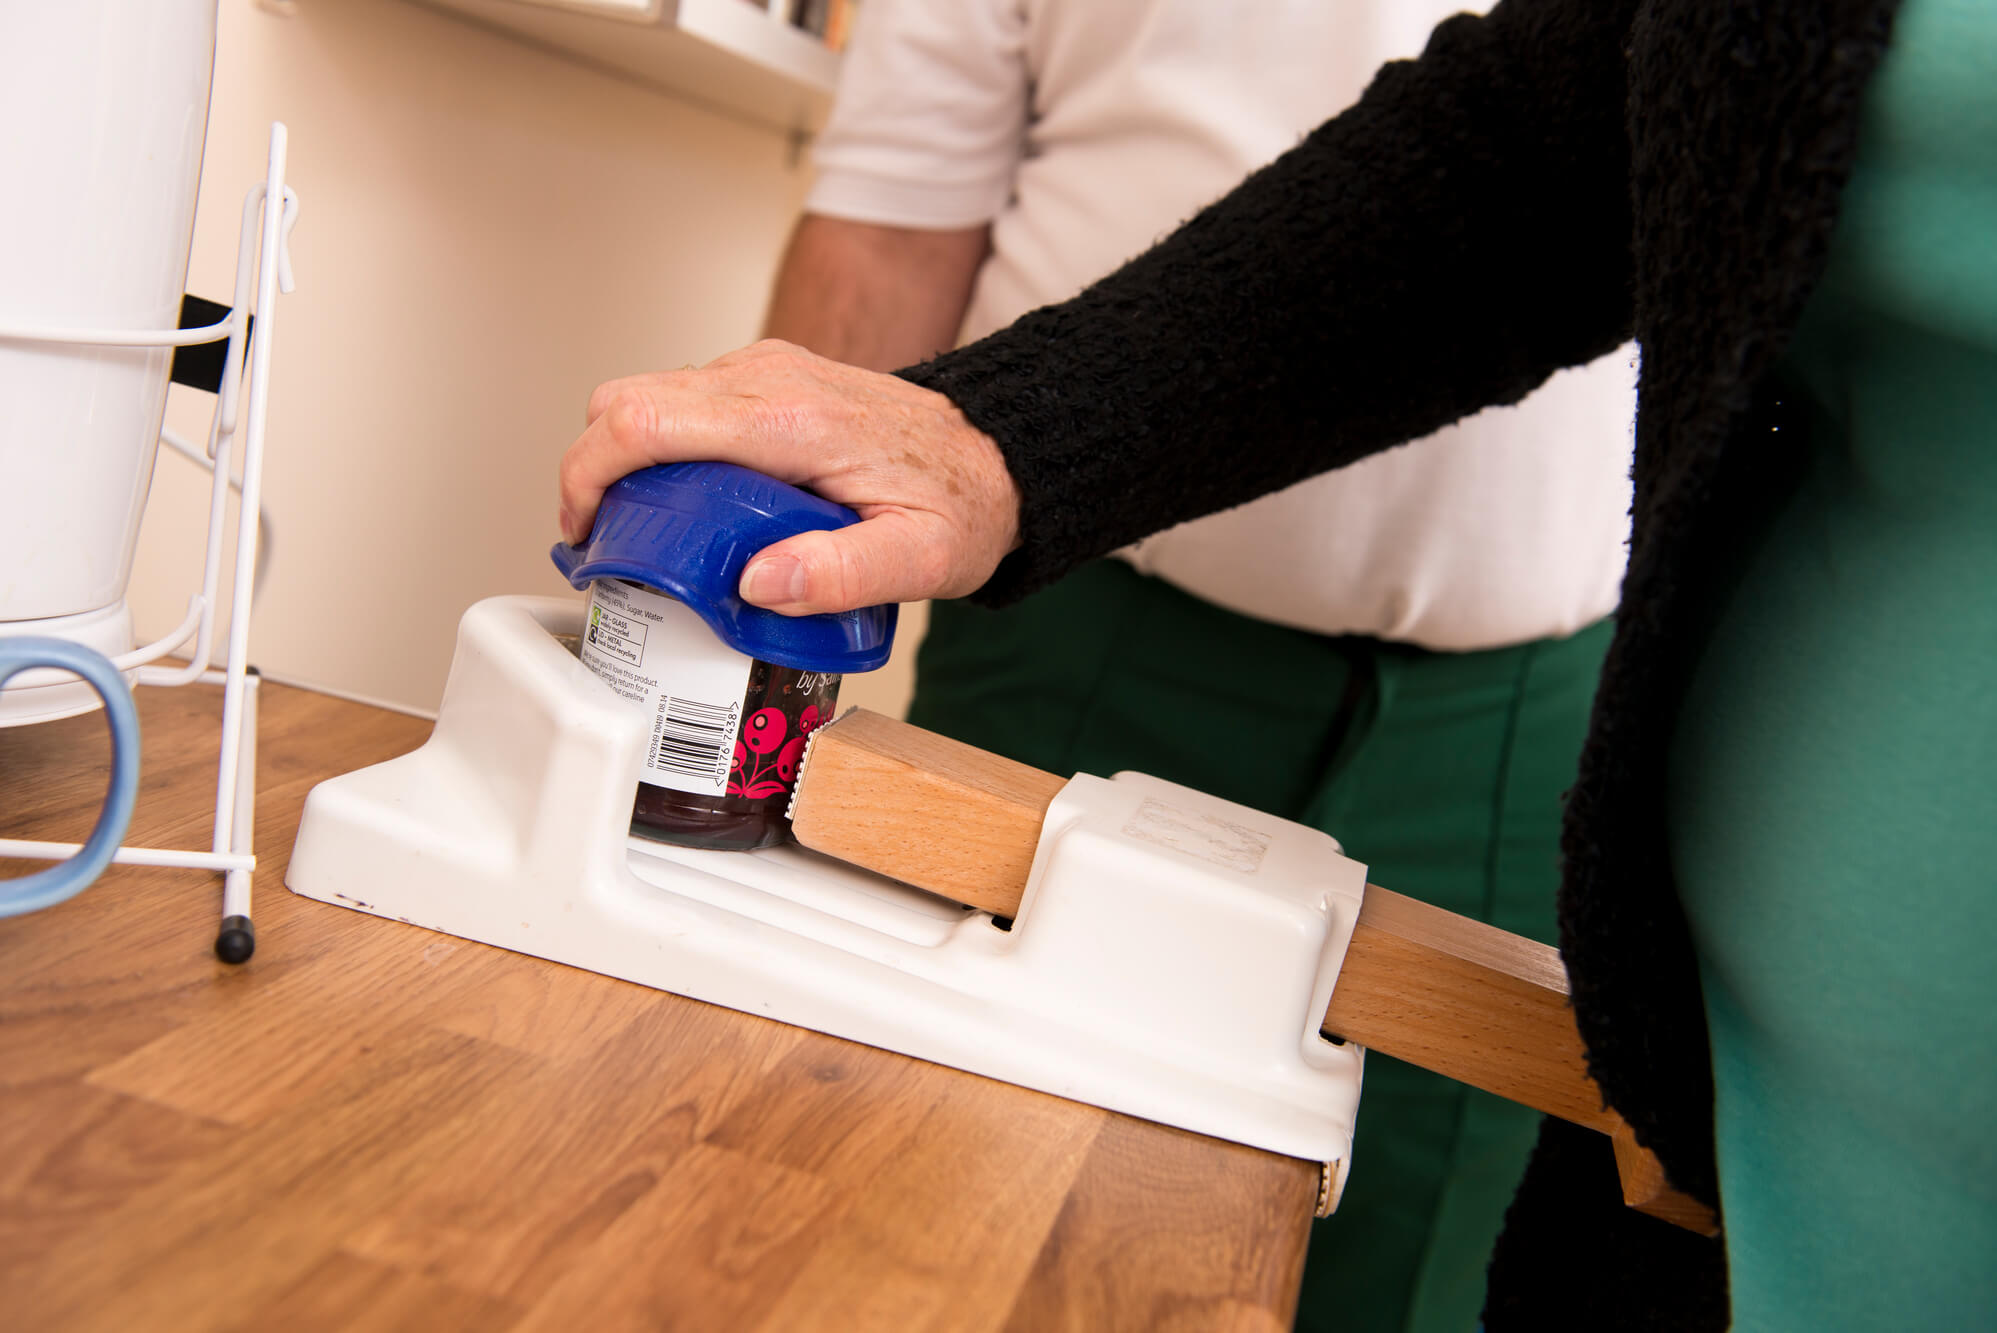 Student opening food with Occupational Therapy tool